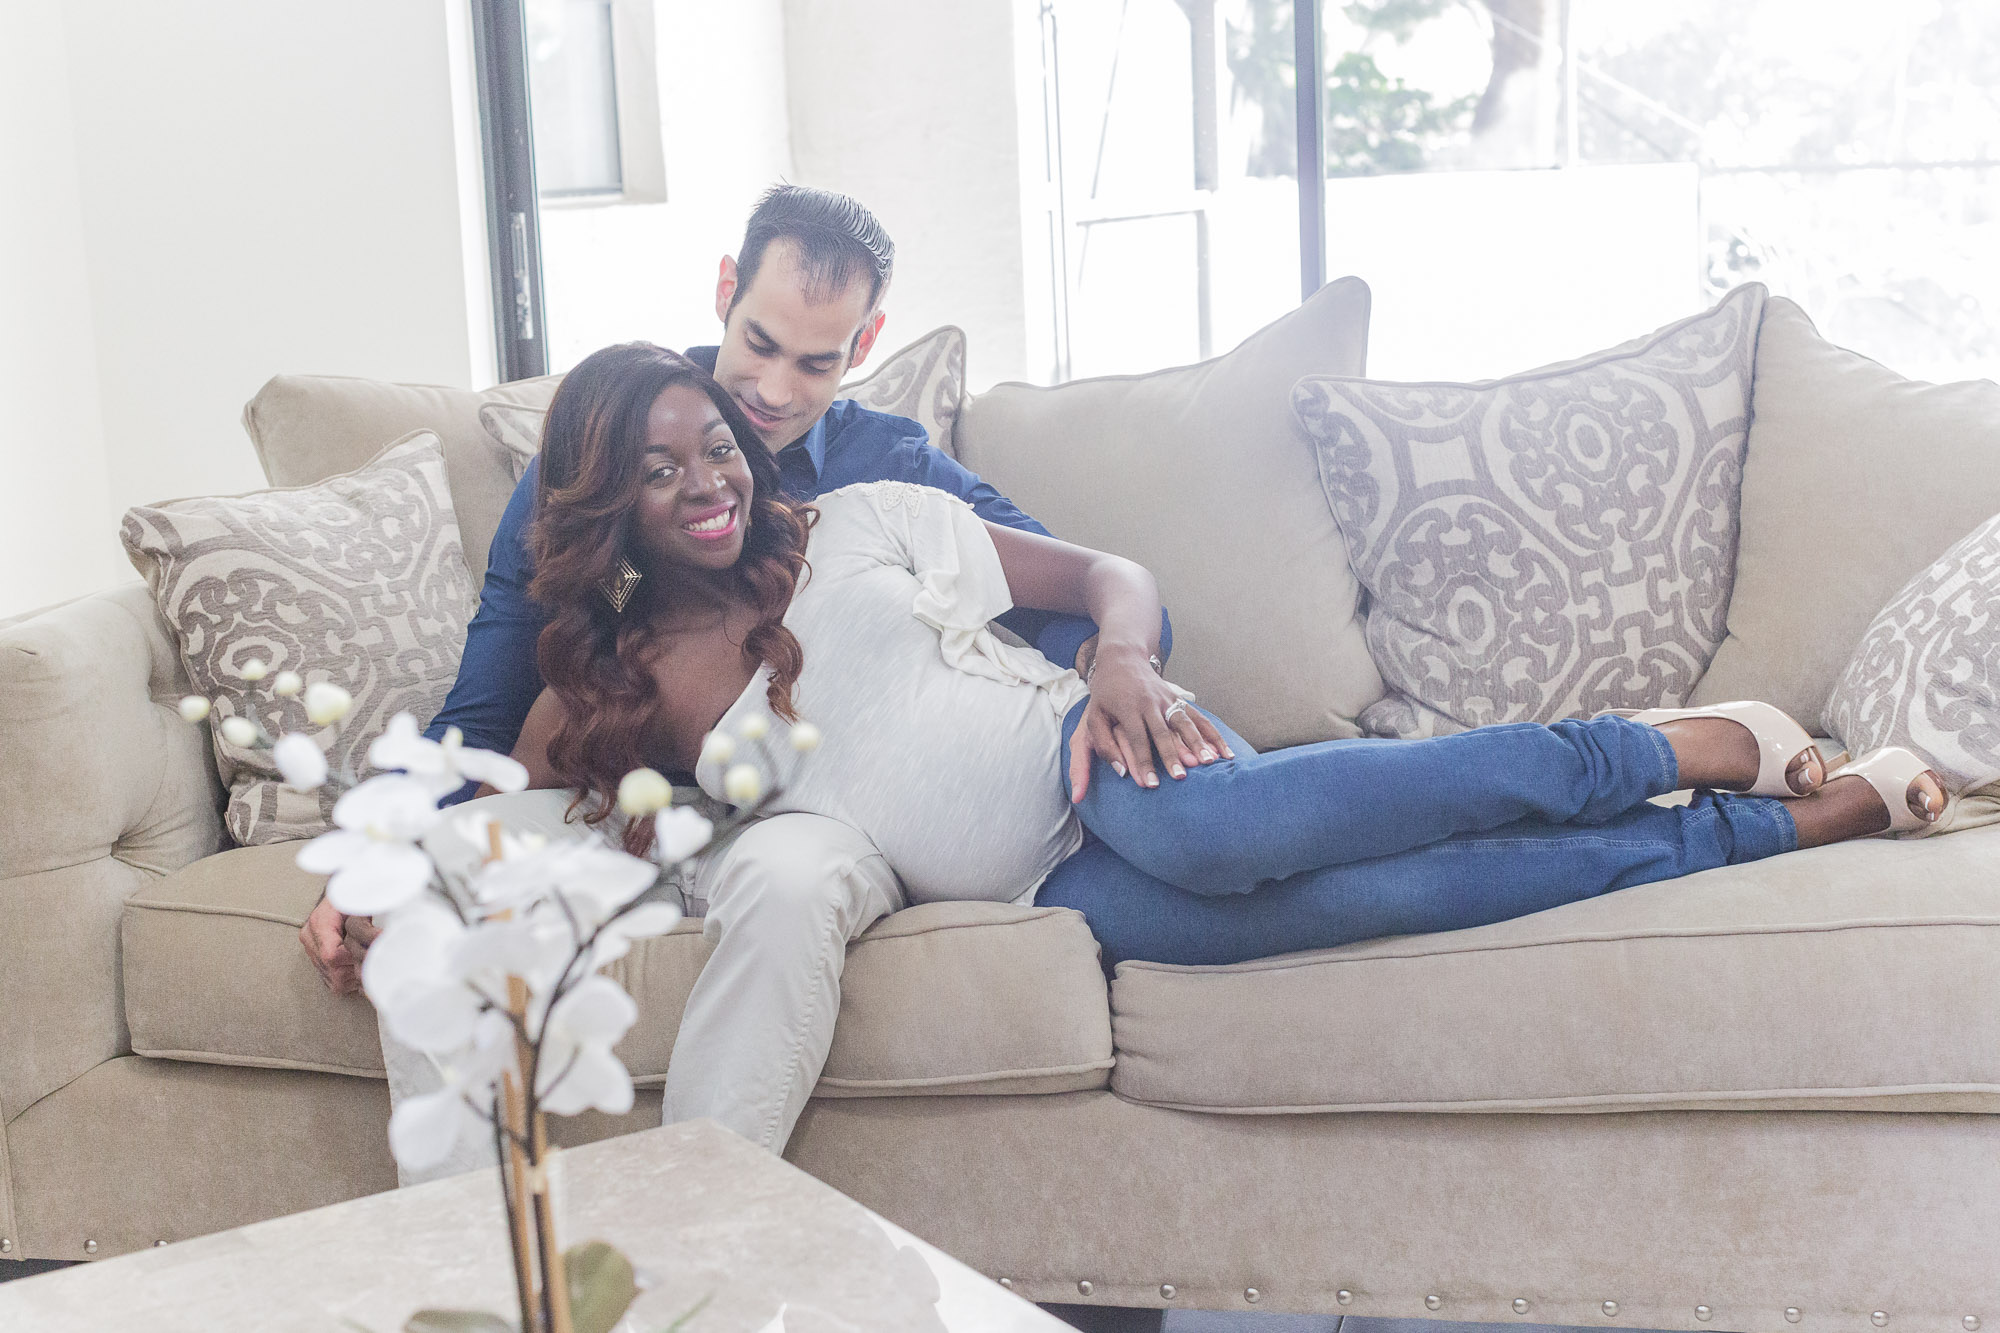 Atou: Pregnancy Photography Shoot at Coral Springs, Fl